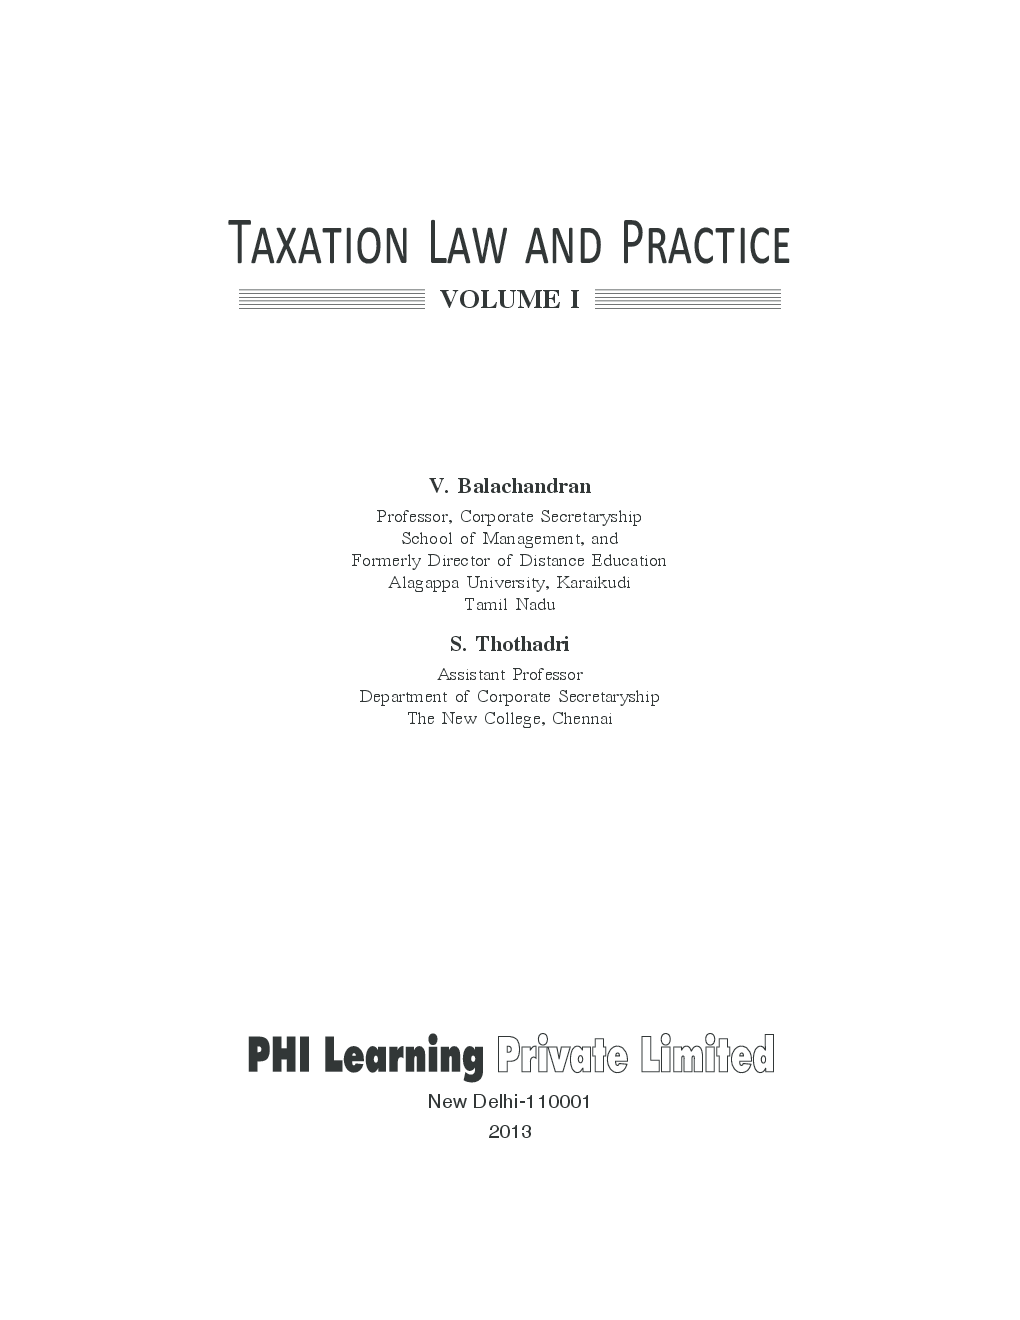 Taxation Law And Practice Volume I - Page 2